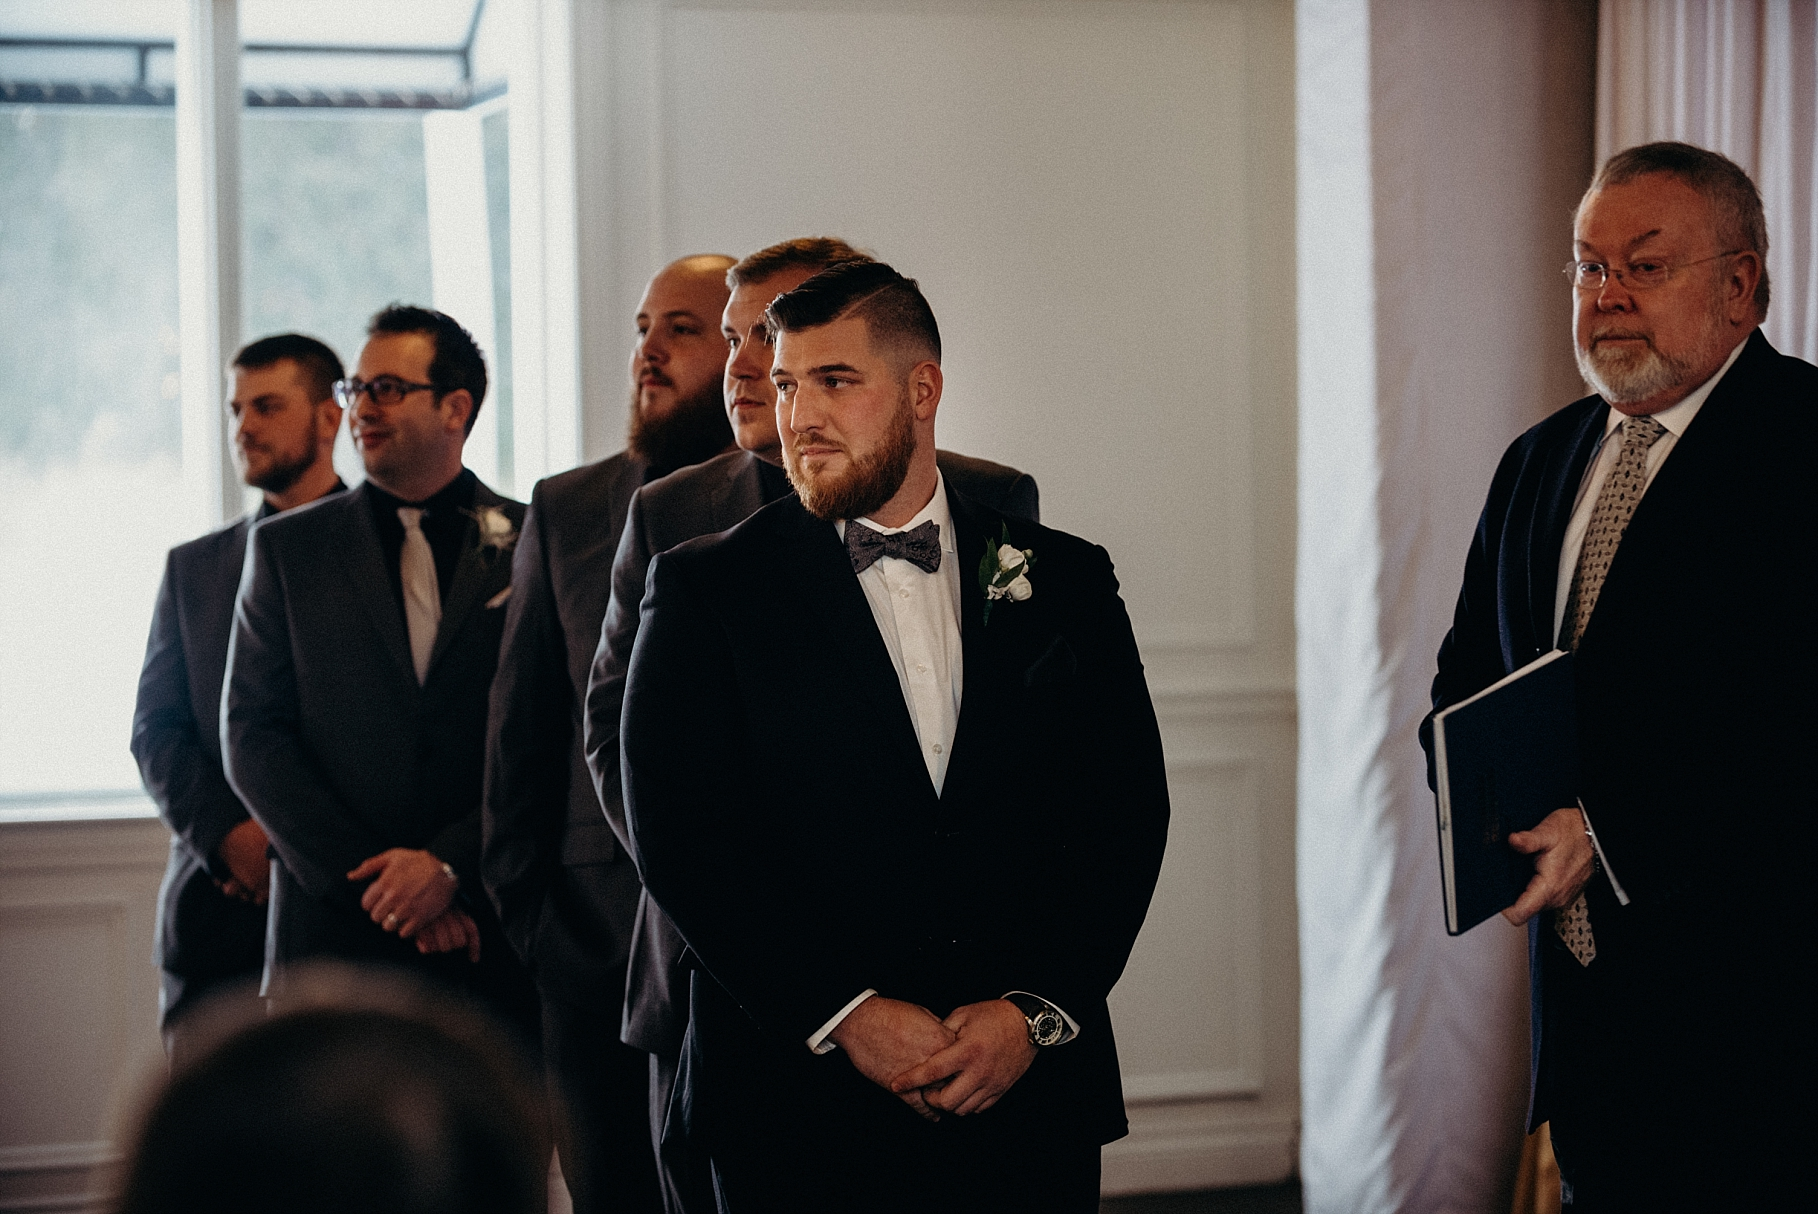 Orchard View Wedding by Mocha Tree Studios Ottawa Wedding and Engagement Photographer and Videographer Dark Moody Intimate Authentic Modern Romantic Cinematic Best Candid 8